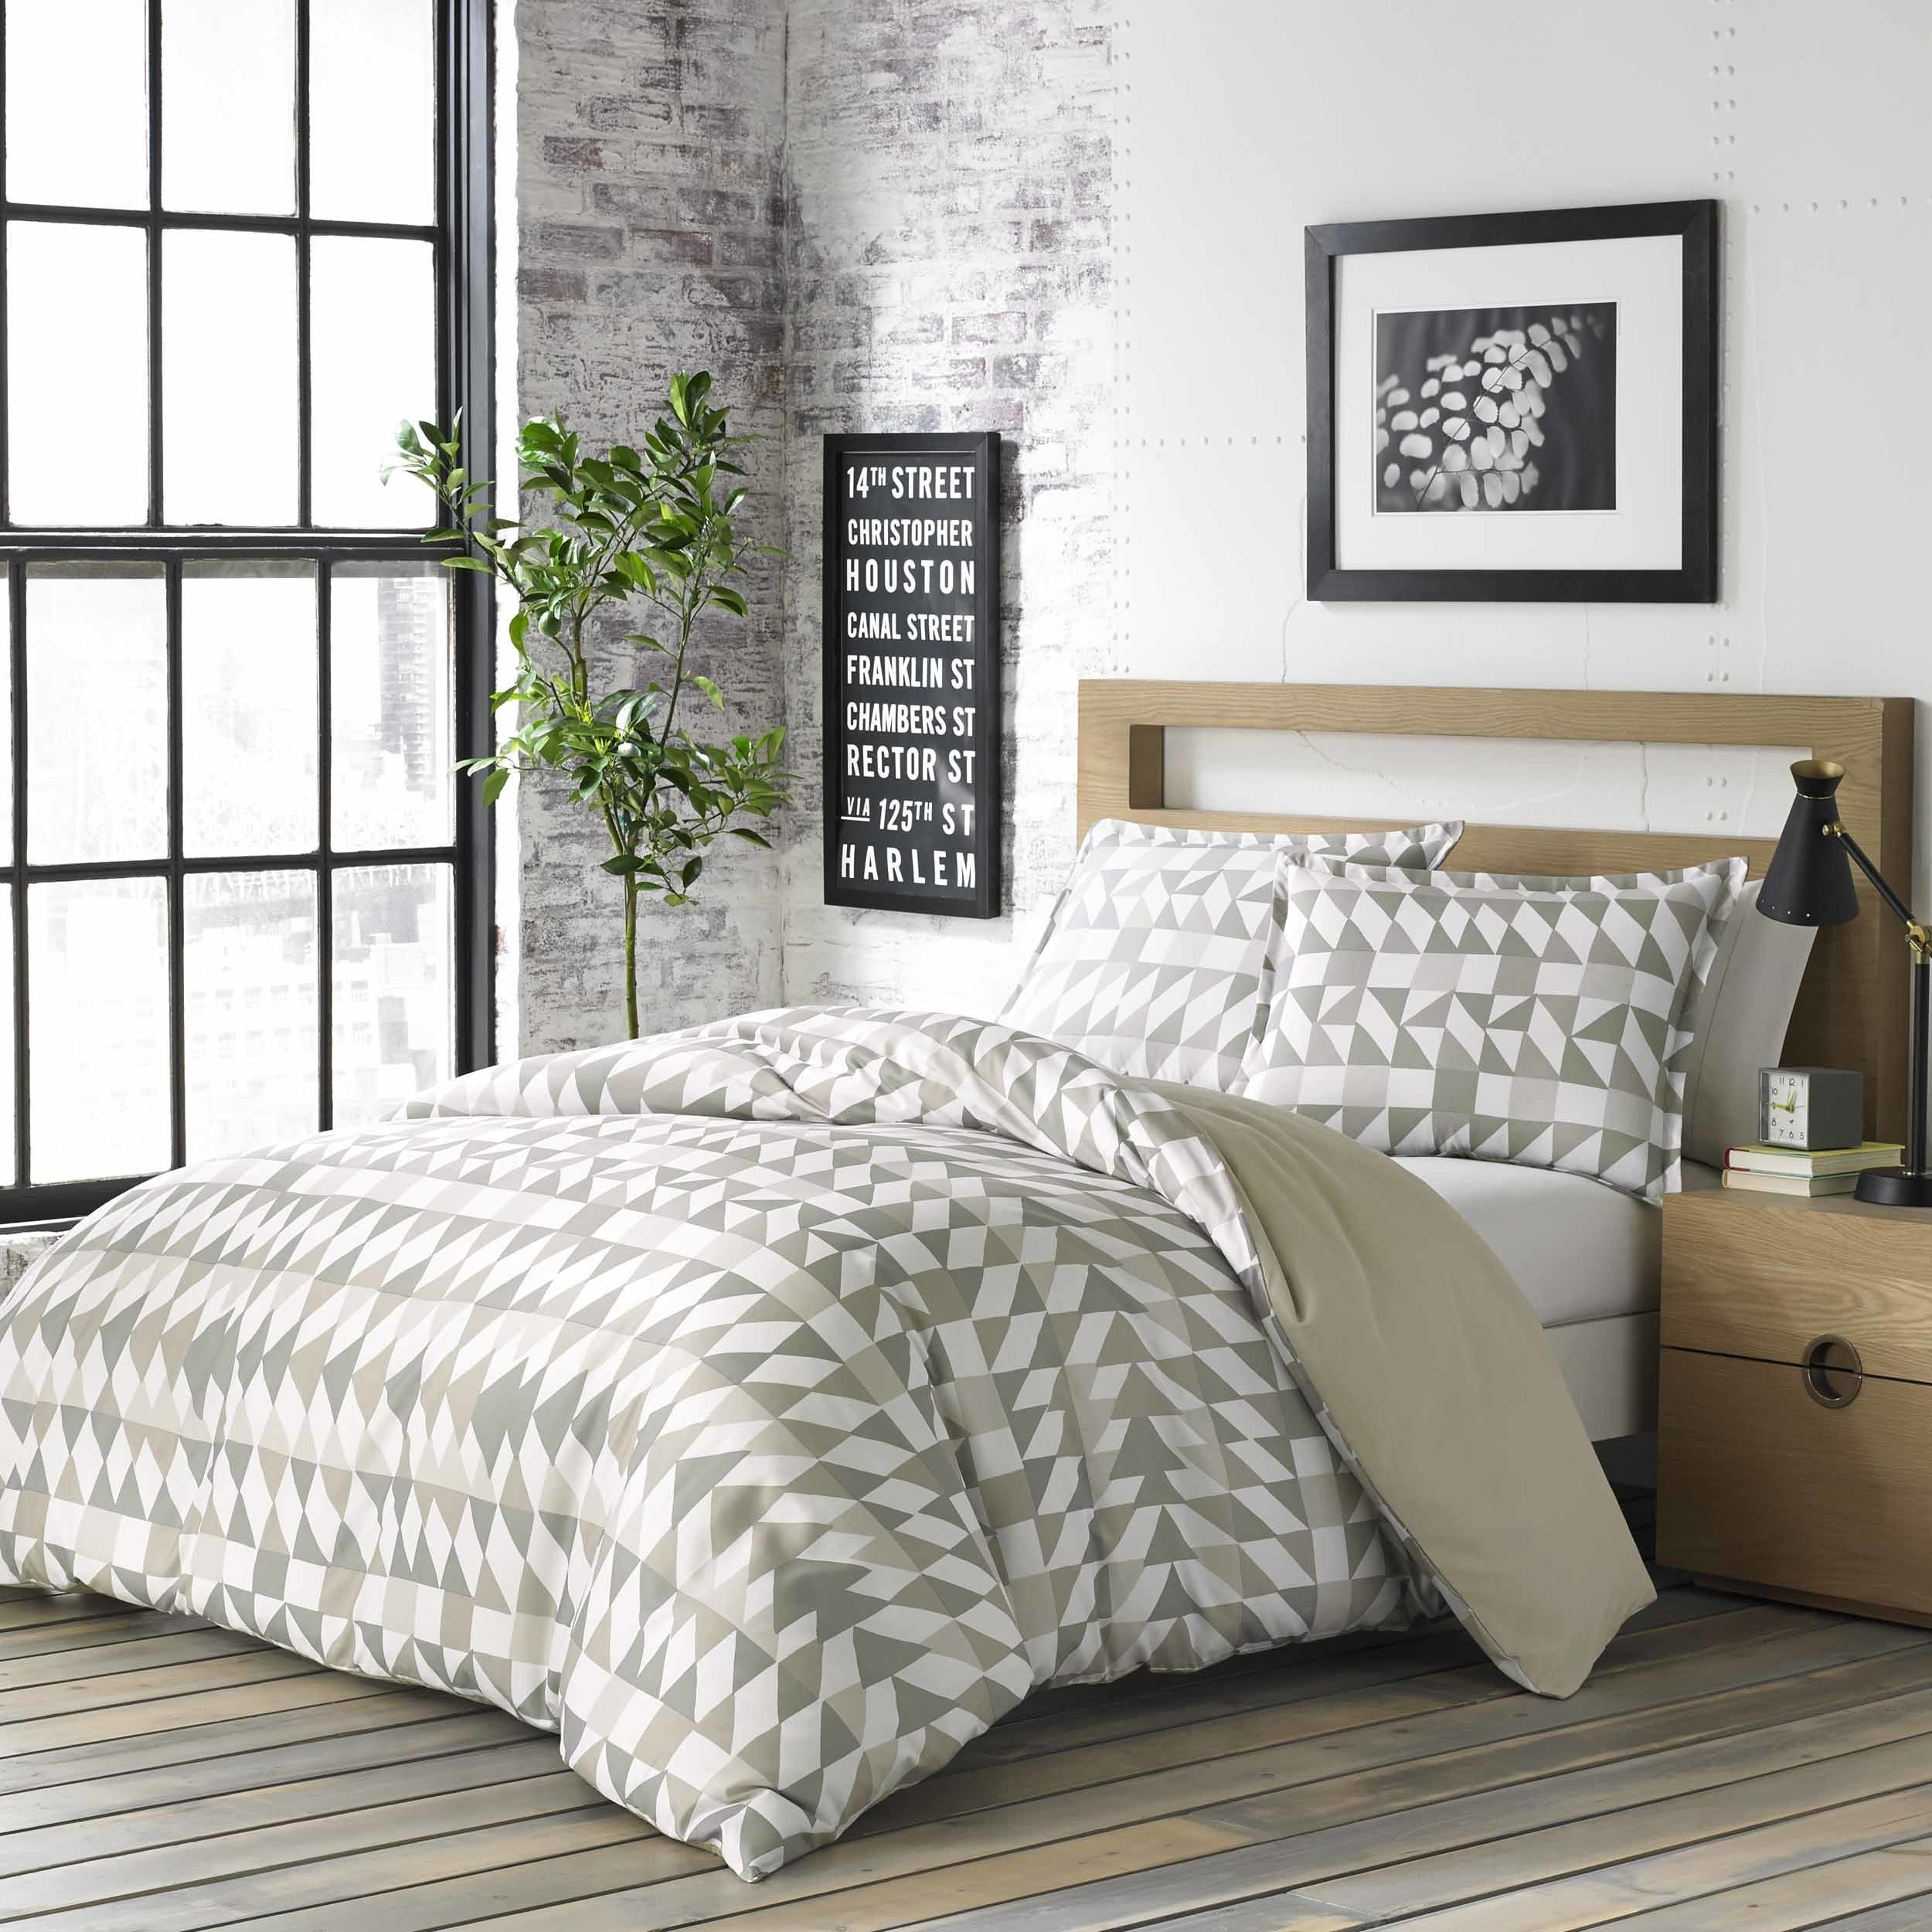 cover bedding mesmerizing headboard stylish using gray charcoal combine bedroom modern ideas with grey nordstrom cool duvet top sweetgalas killer for sets design covers black